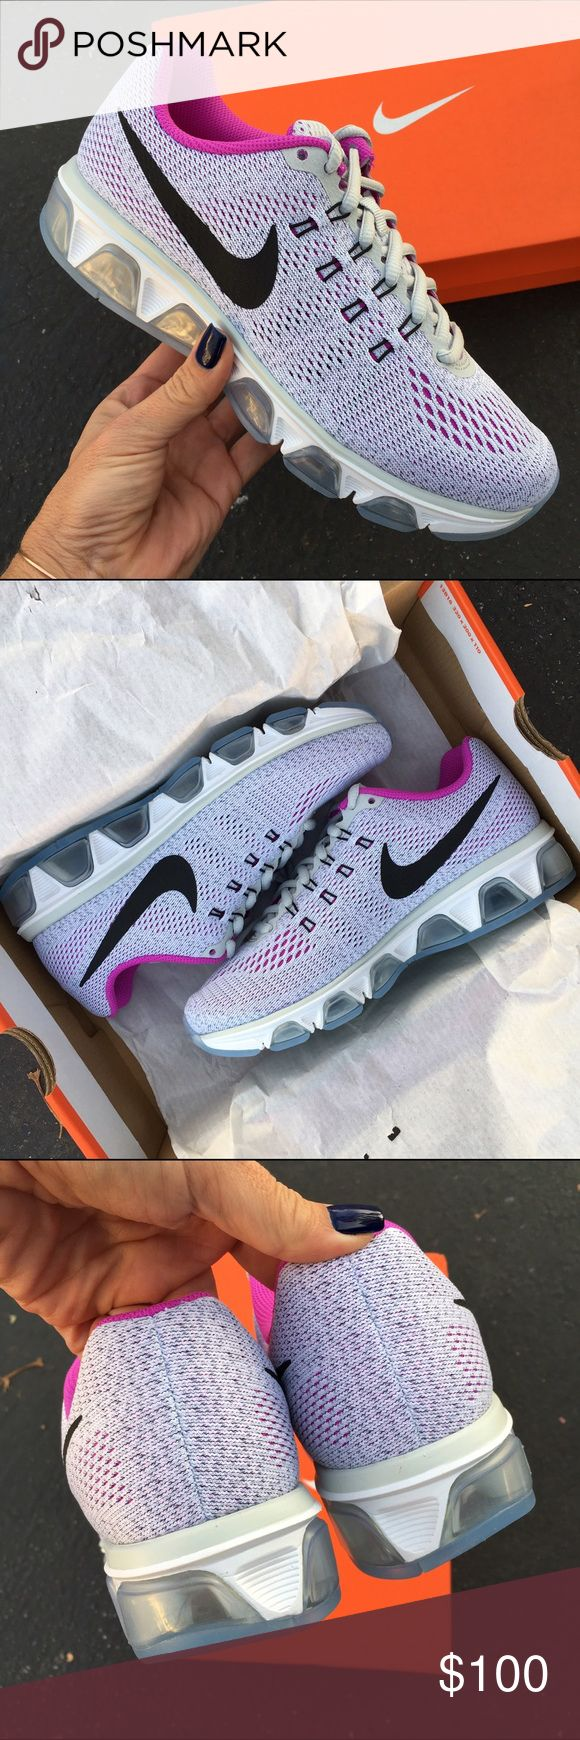 nike air max tailwind 2010 grey and neon colorway